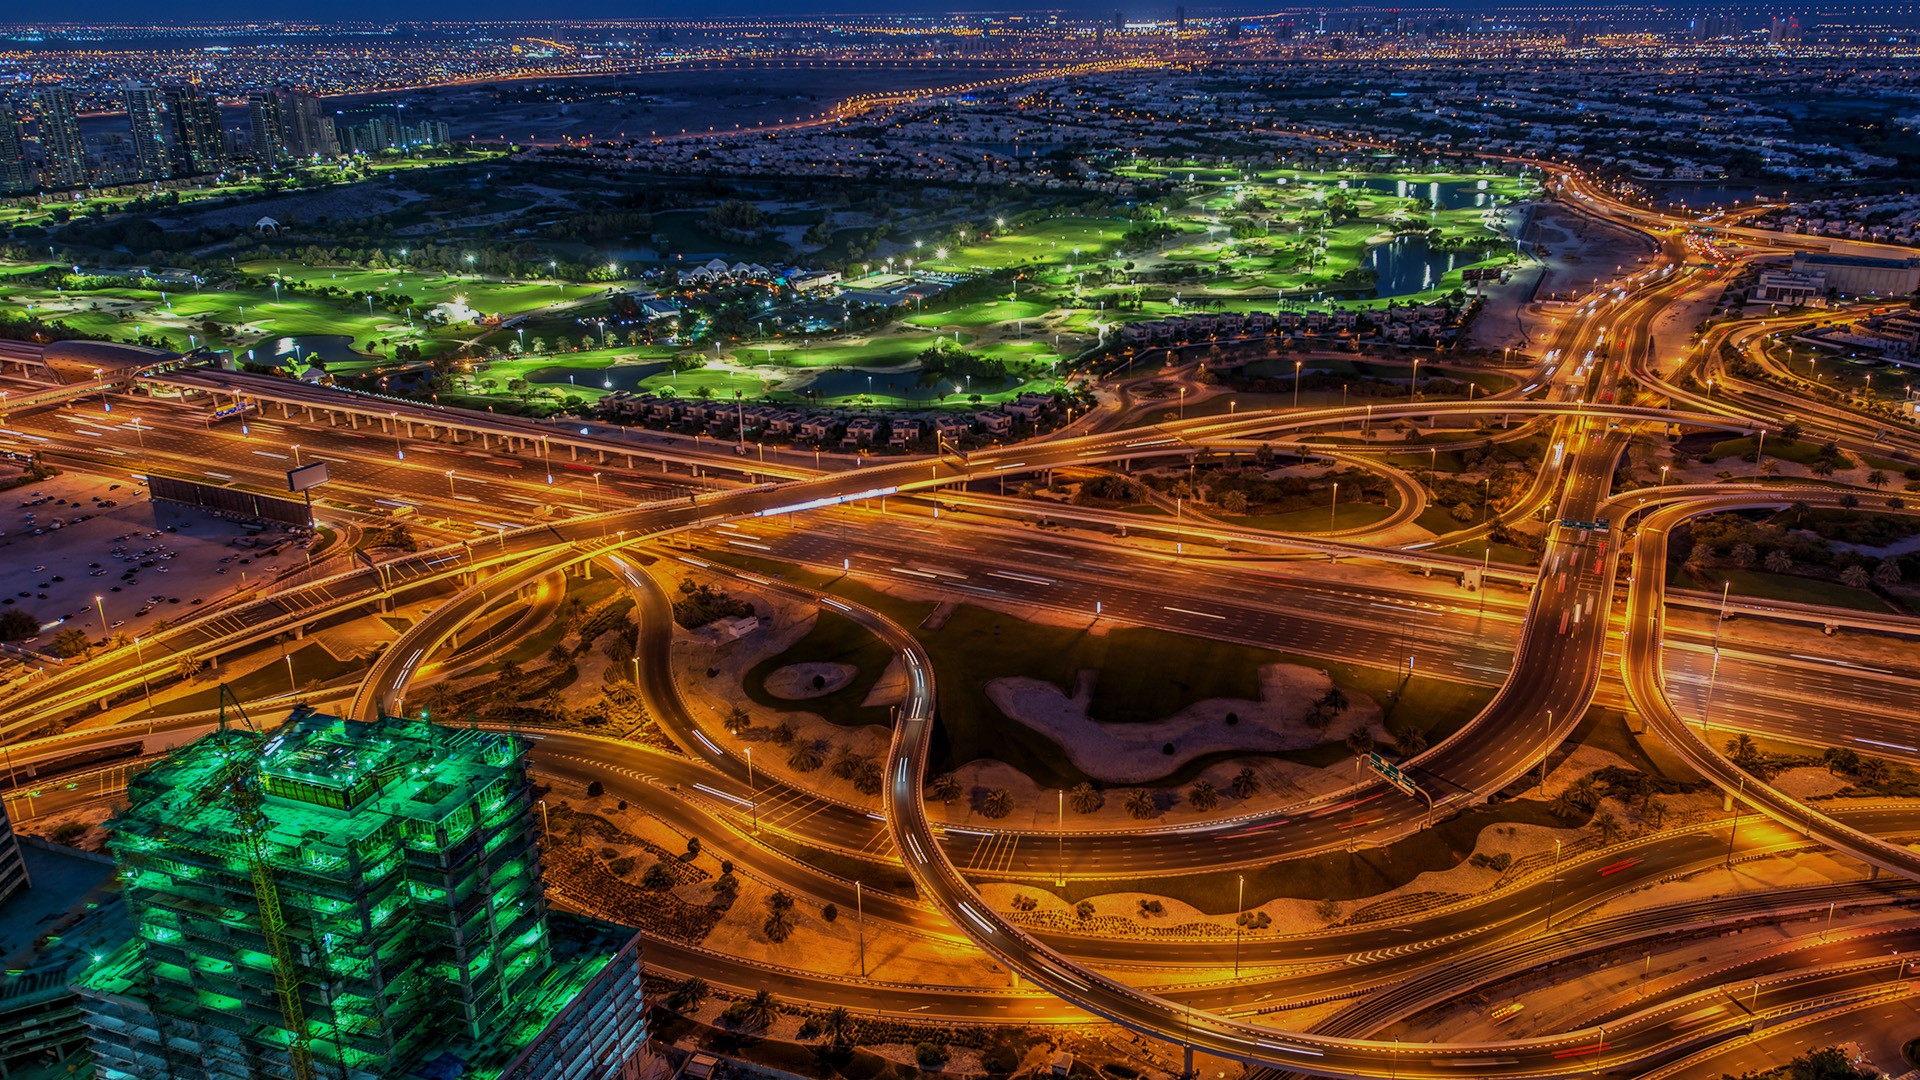 Crossroads From The Roof In Dubai City Uae Windows 10